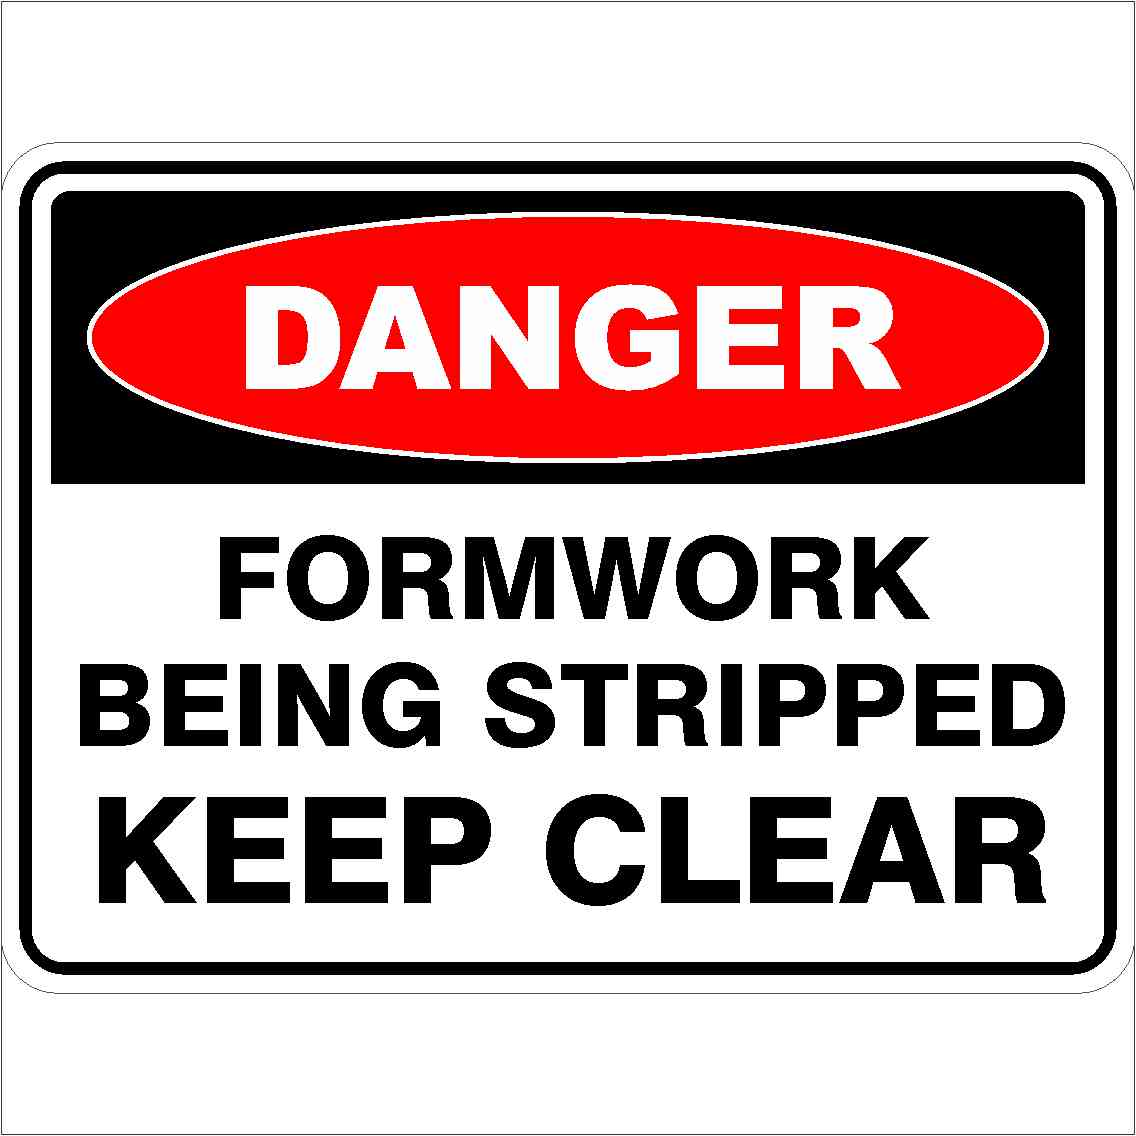 Danger Signs FORMWORK BEING STRIPPED KEEP CLEAR